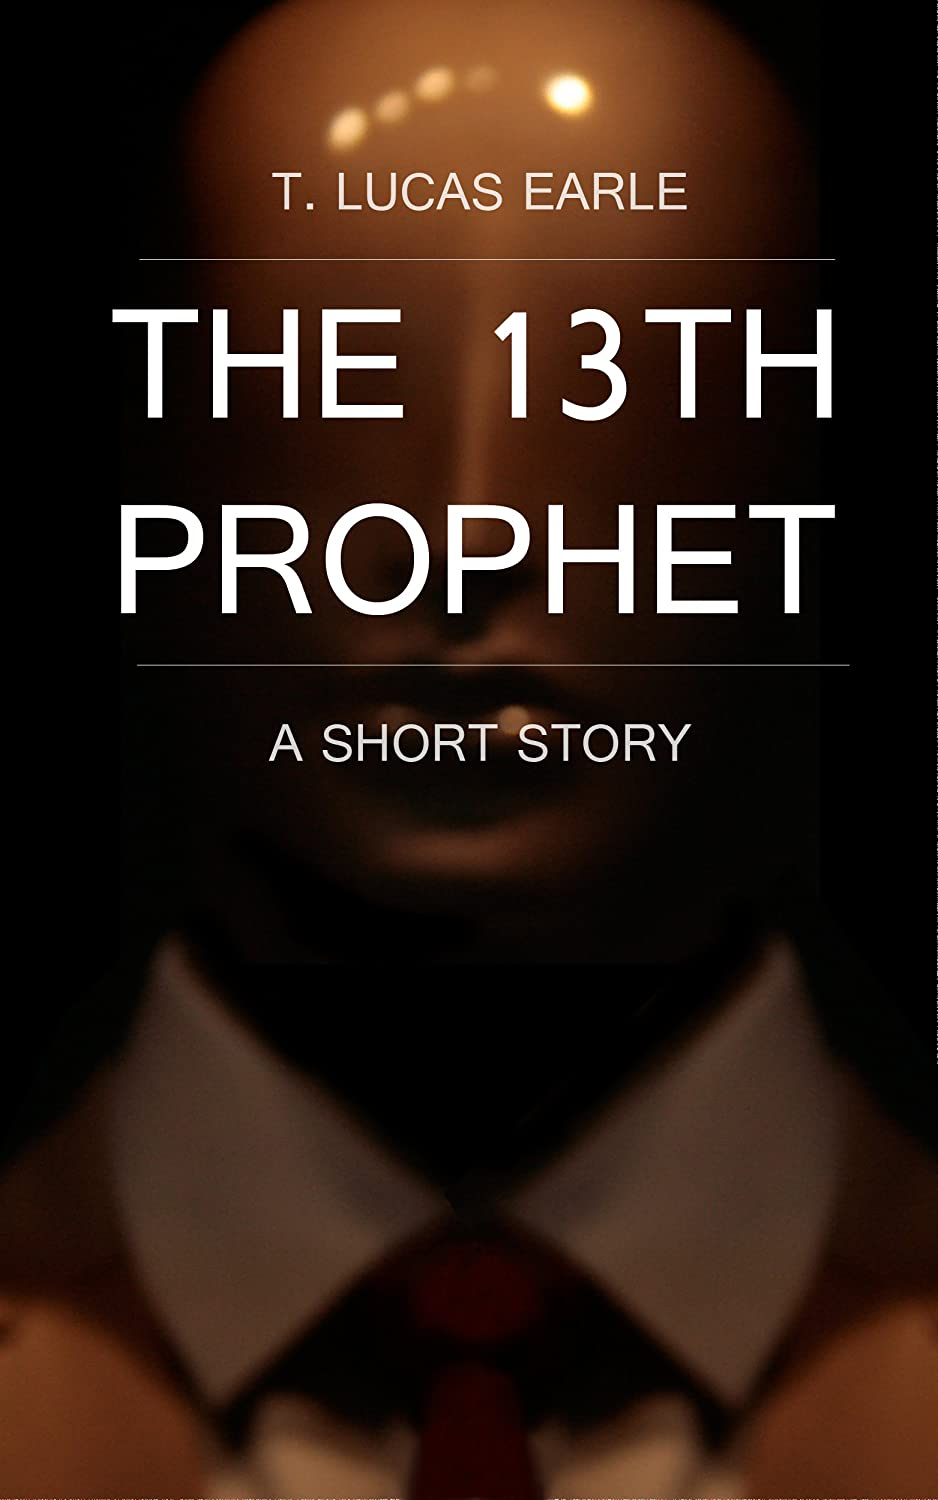 The 13th Prophet by T. Lucas Earle